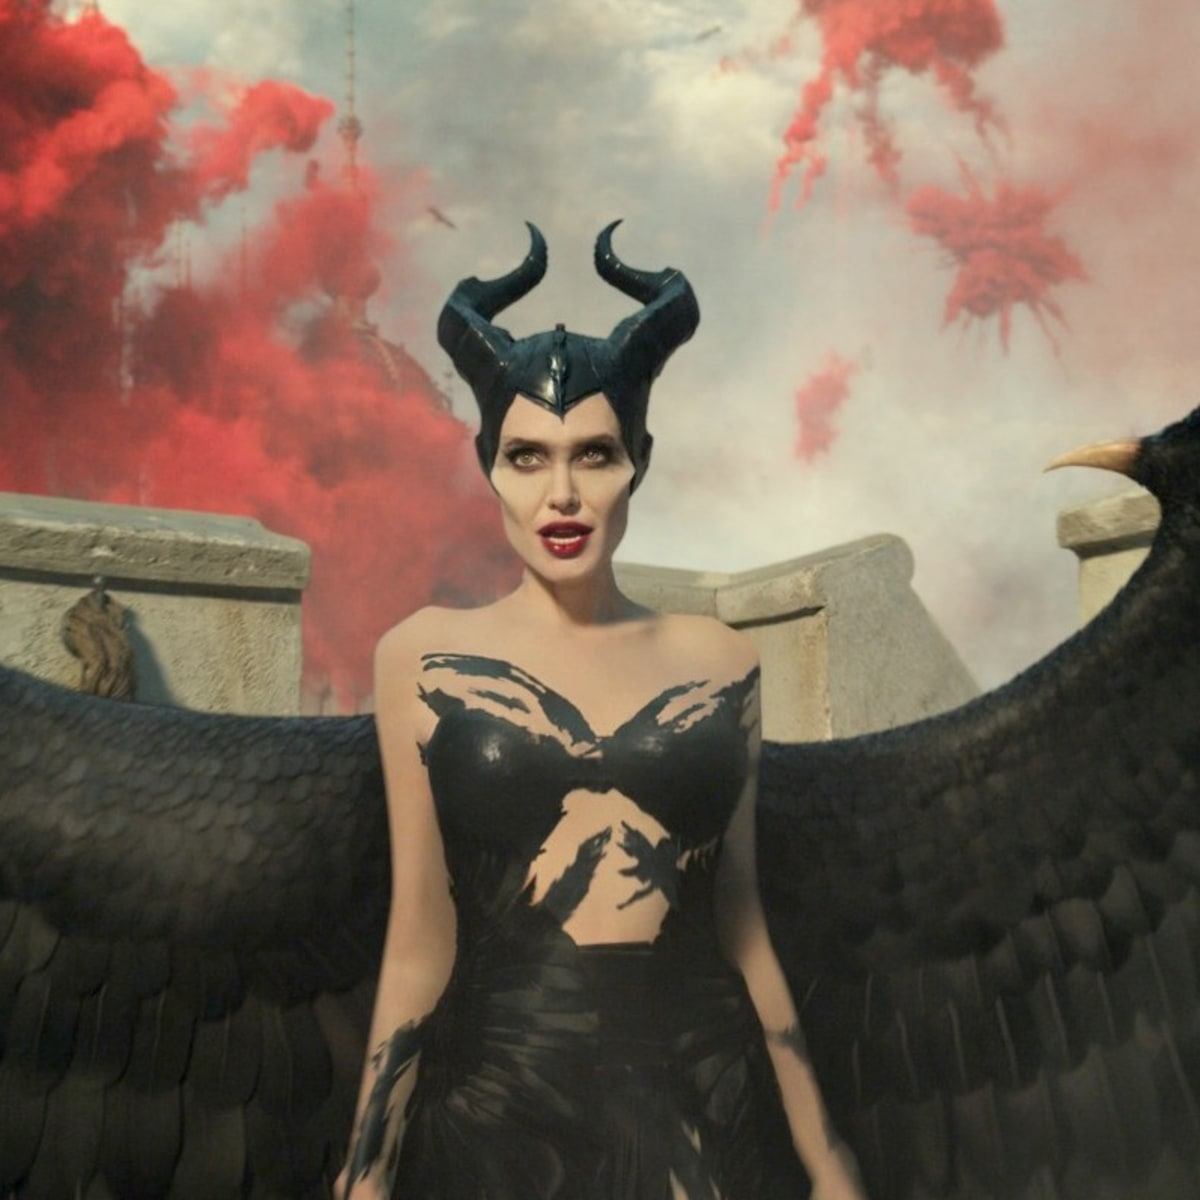 The Maleficent Sequel S Battle Costumes Include Angelina Jolie And Michelle Pfeiffer In Hundreds Of Thousands Of Swarovski Gems Fashionista